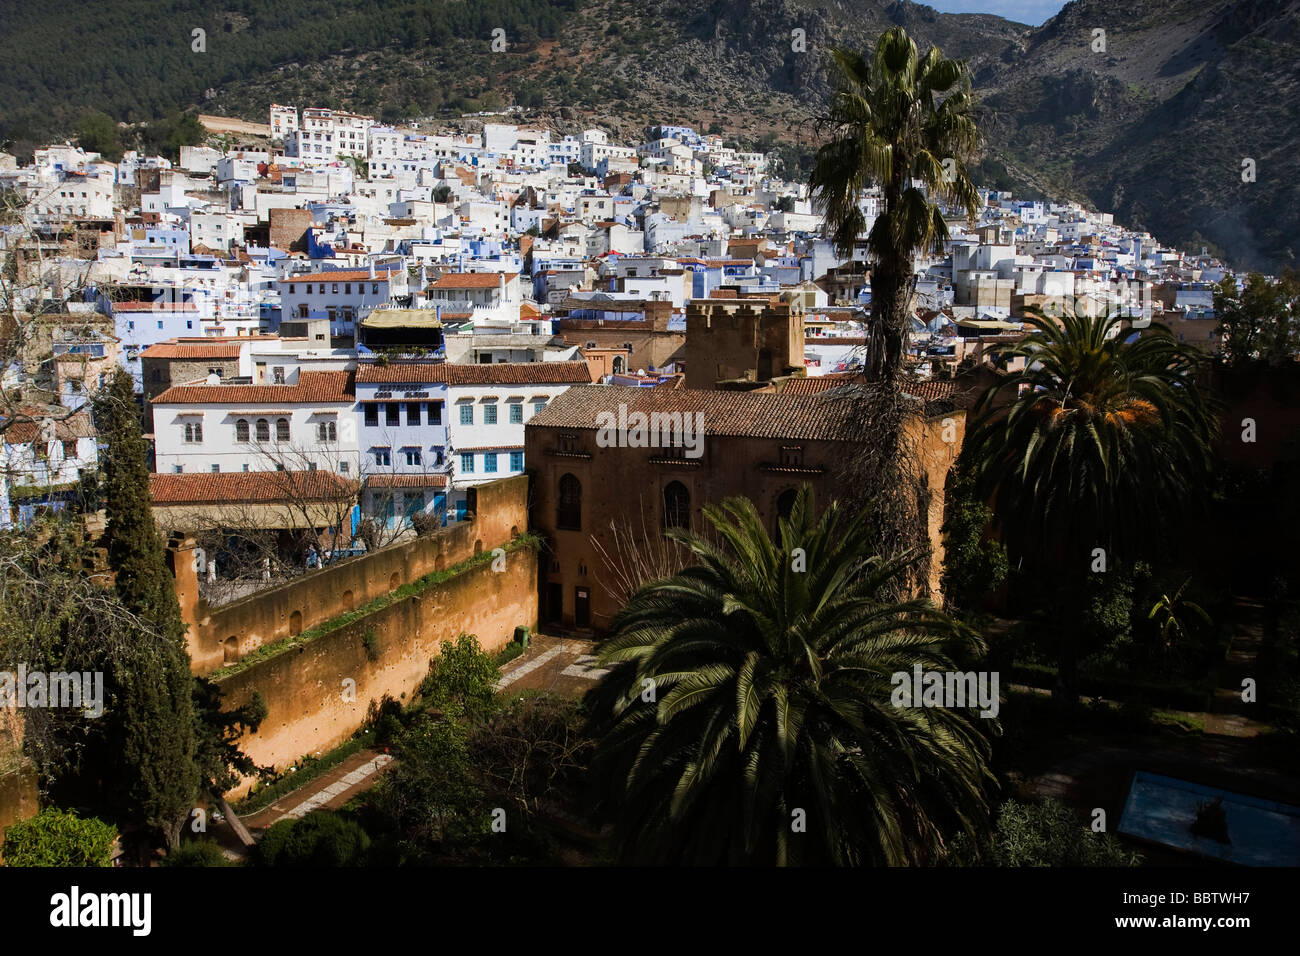 View from Kasbah, Chefchaouen, Morocco, North Africa - Stock Image